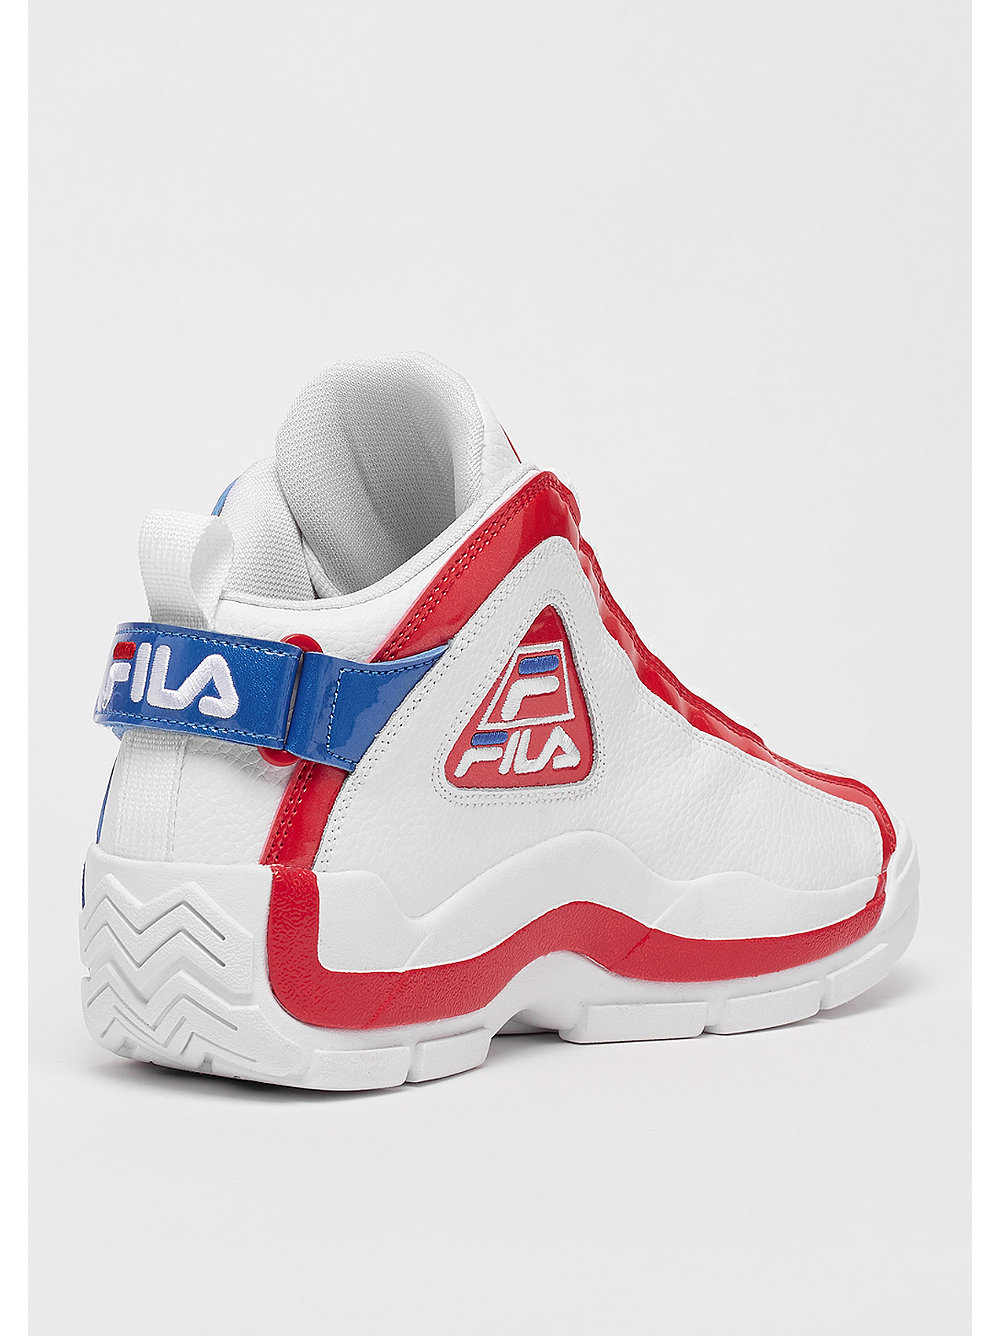 Snipes Celebrates 1998 with New Fila 96 Collaboration - WearTesters